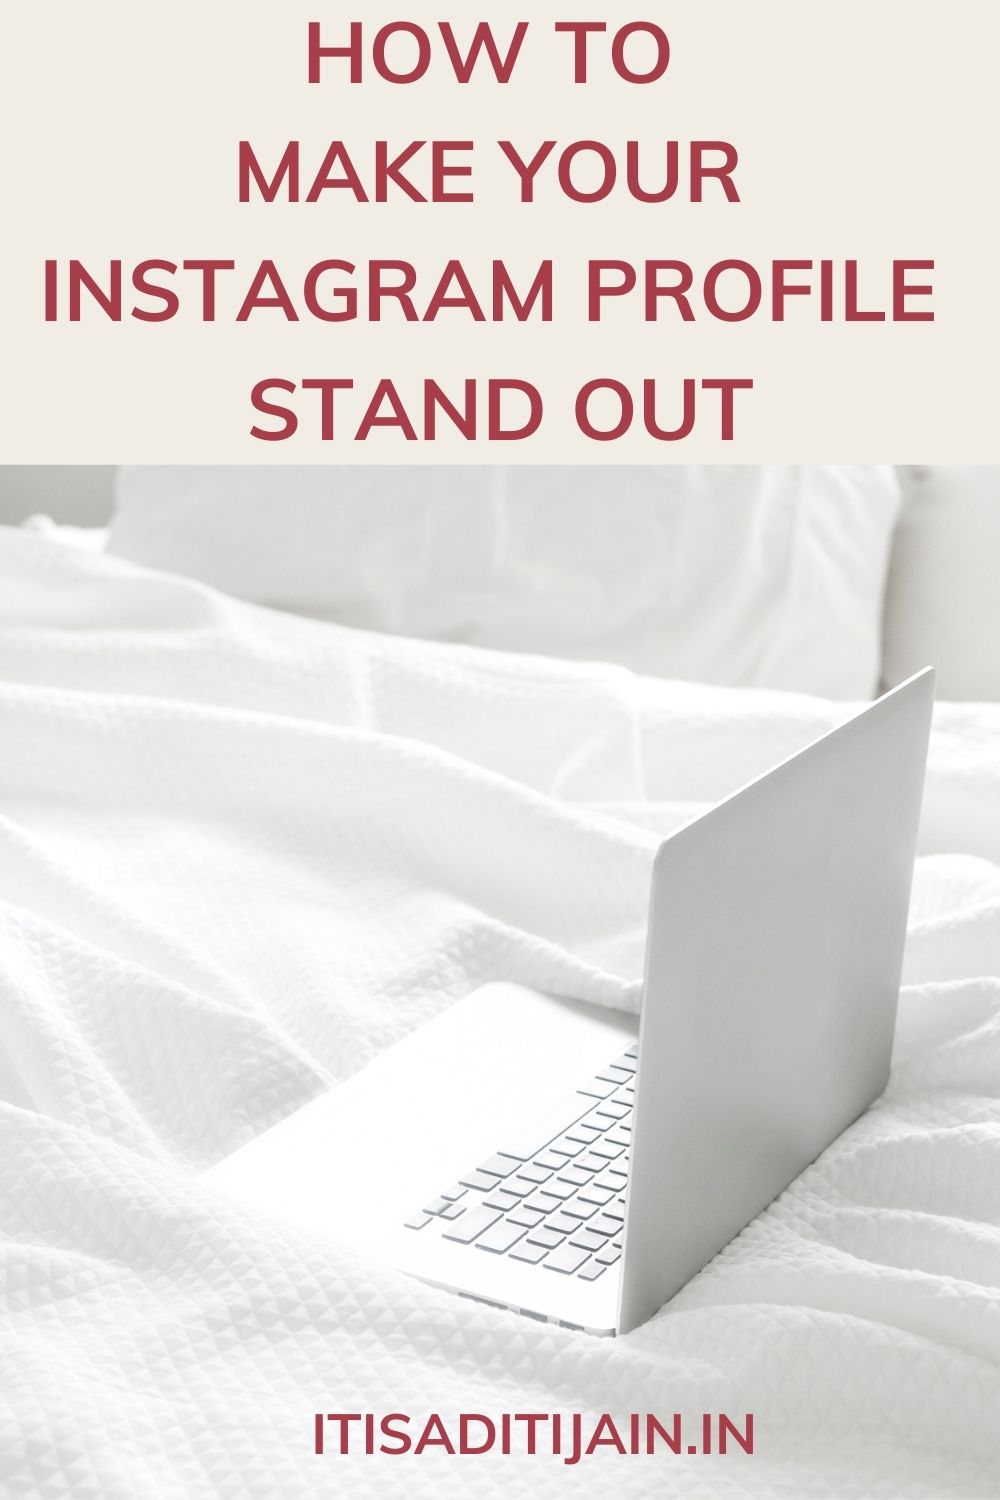 How To Make Your Instagram Profile Stand Out